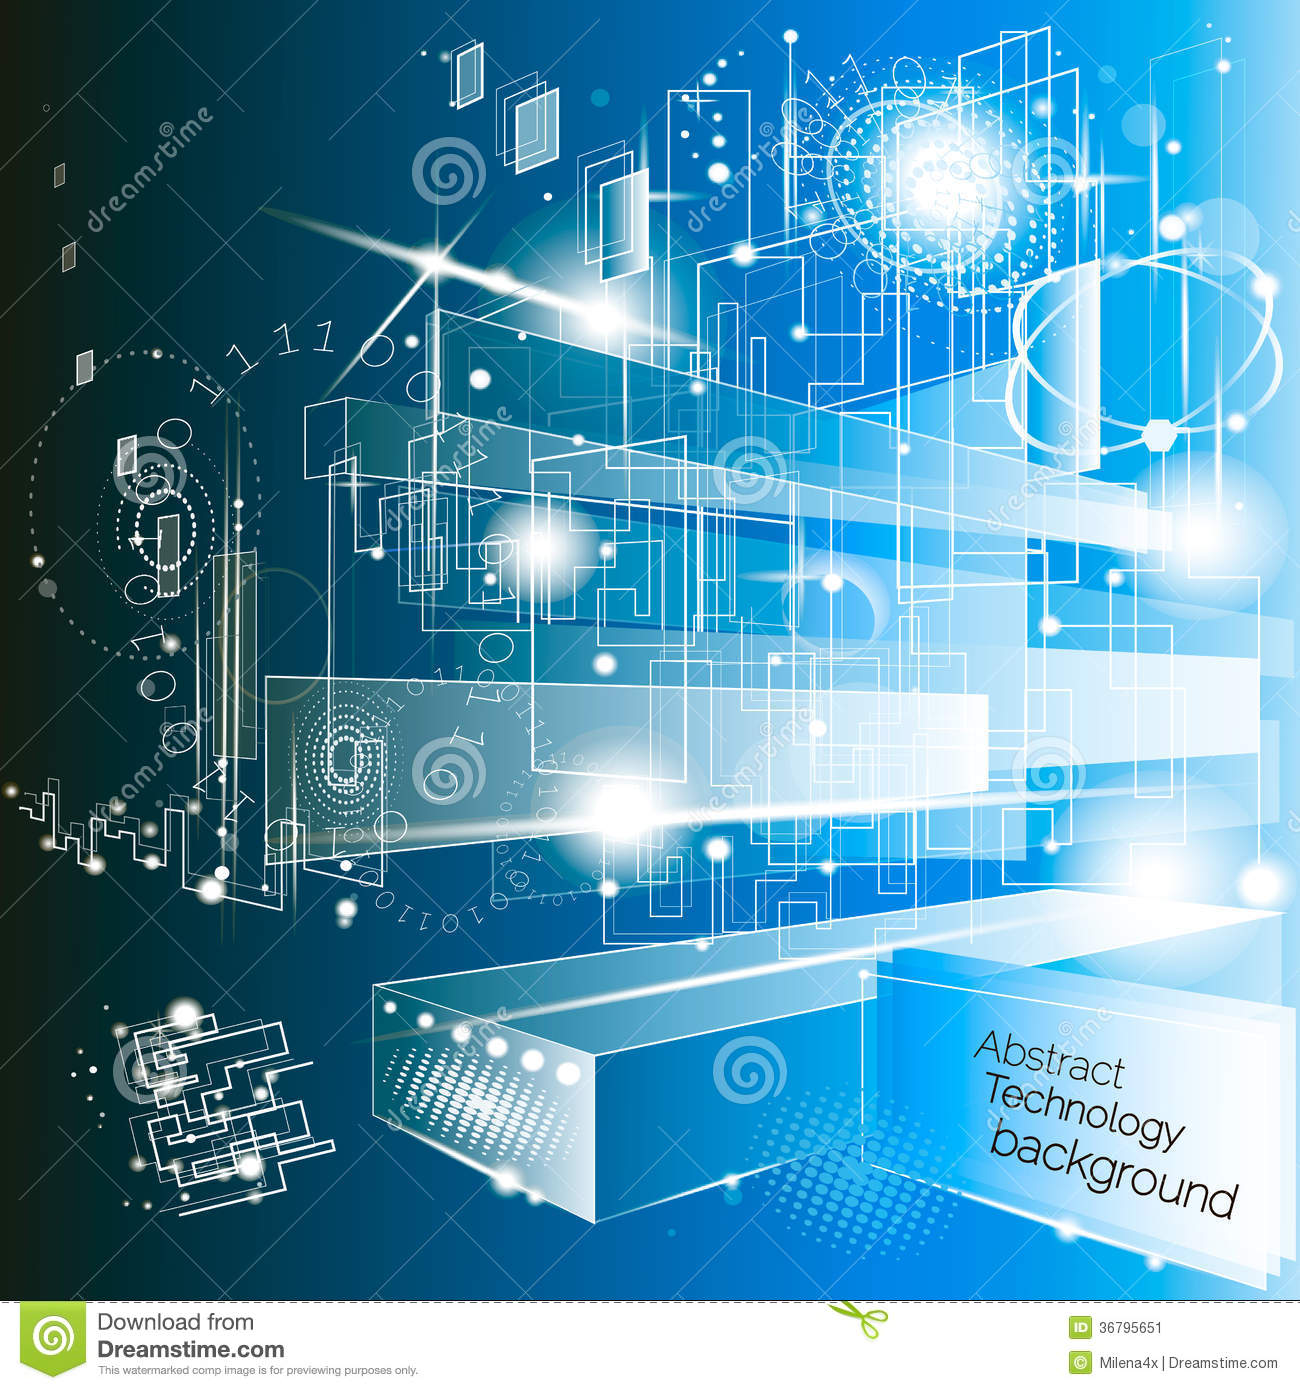 Light Circuit Science Ask Answer Wiring Diagram Board Vector Background Stock Image 45284500 Abstract Technology 36795651 Projects Worksheets